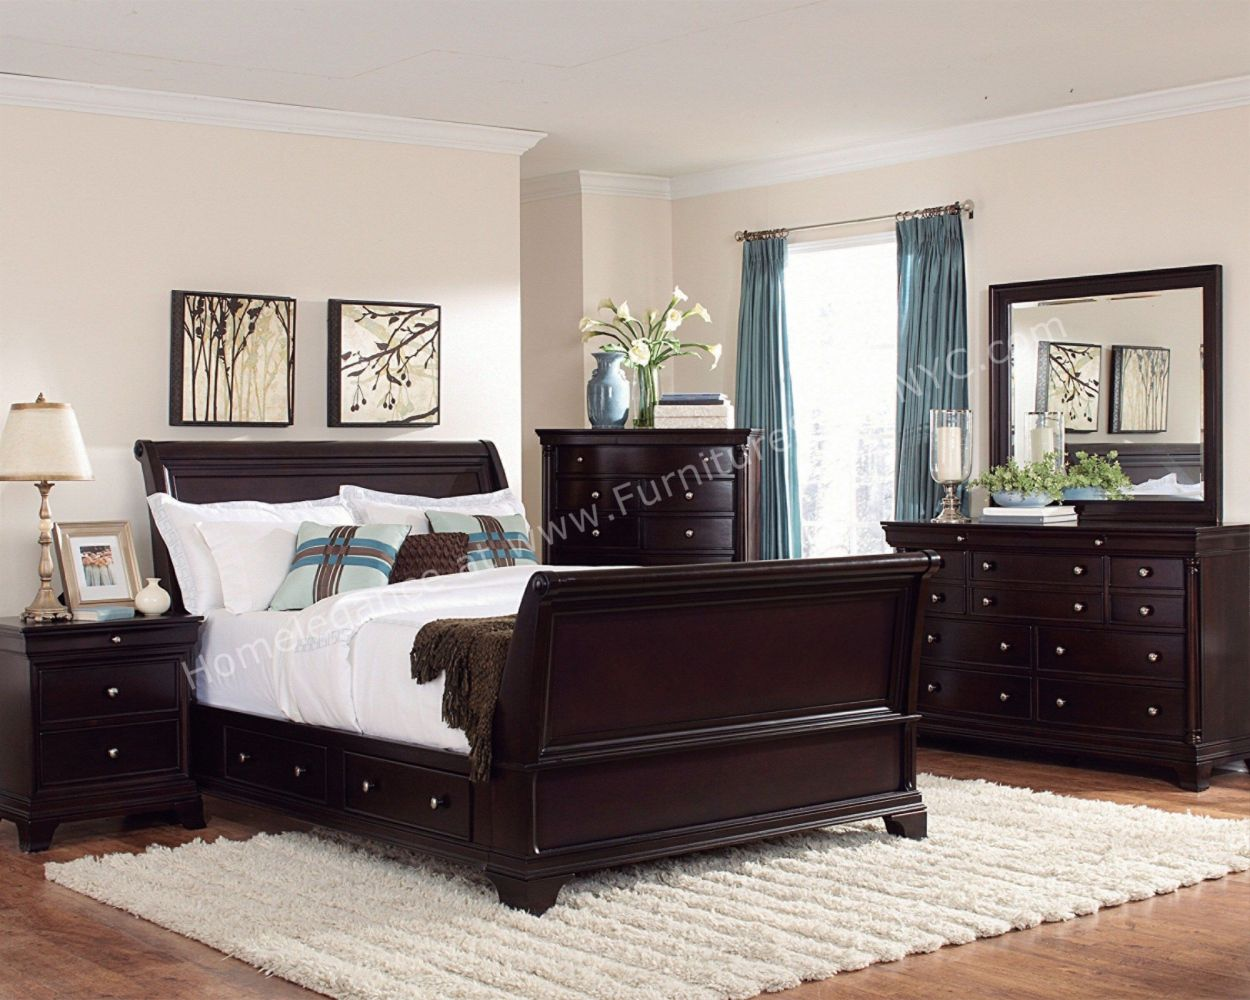 dark cherry wood bedroom furniture best quality furniture check